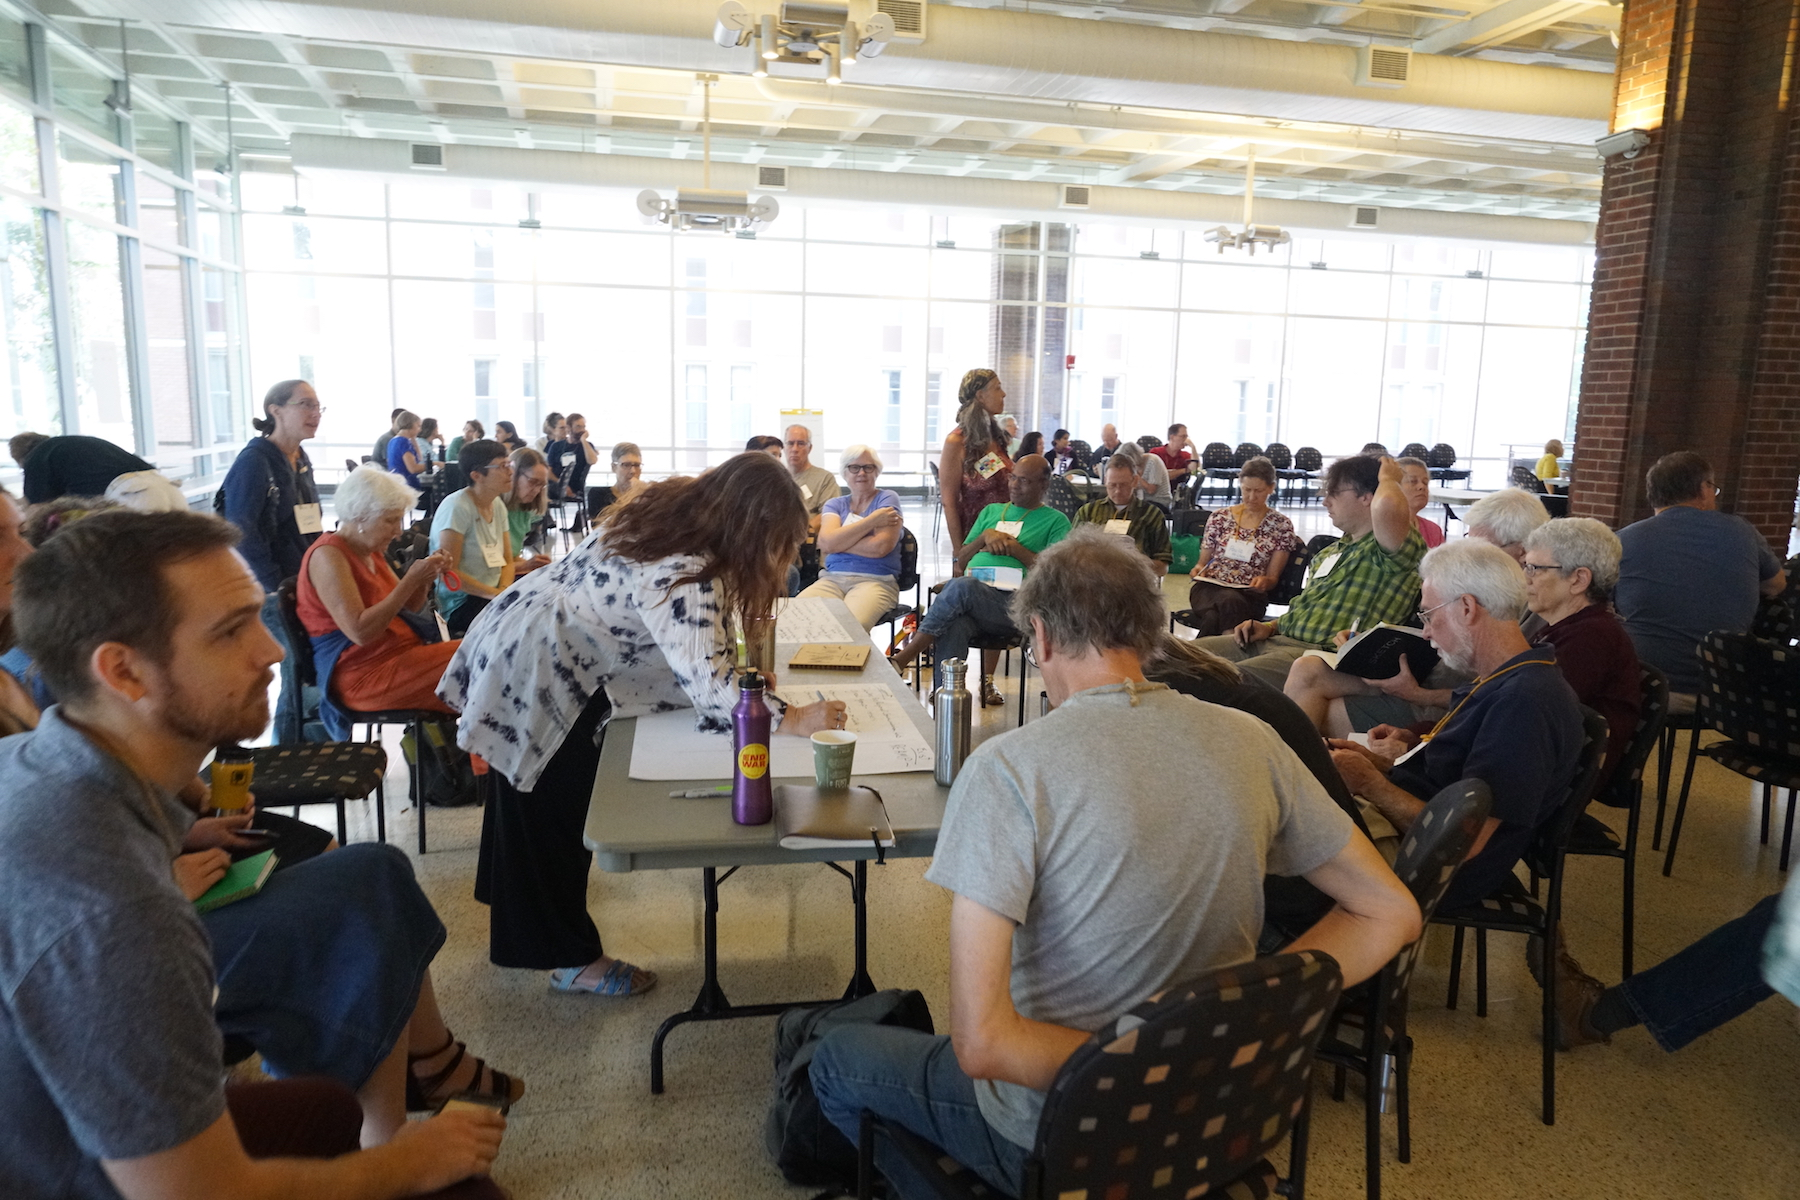 It's no great surprise that the biggest bioregional breakout group, by far, were those Transitioners from in and around the Twin Cities. Photo by Teresa Konechne.